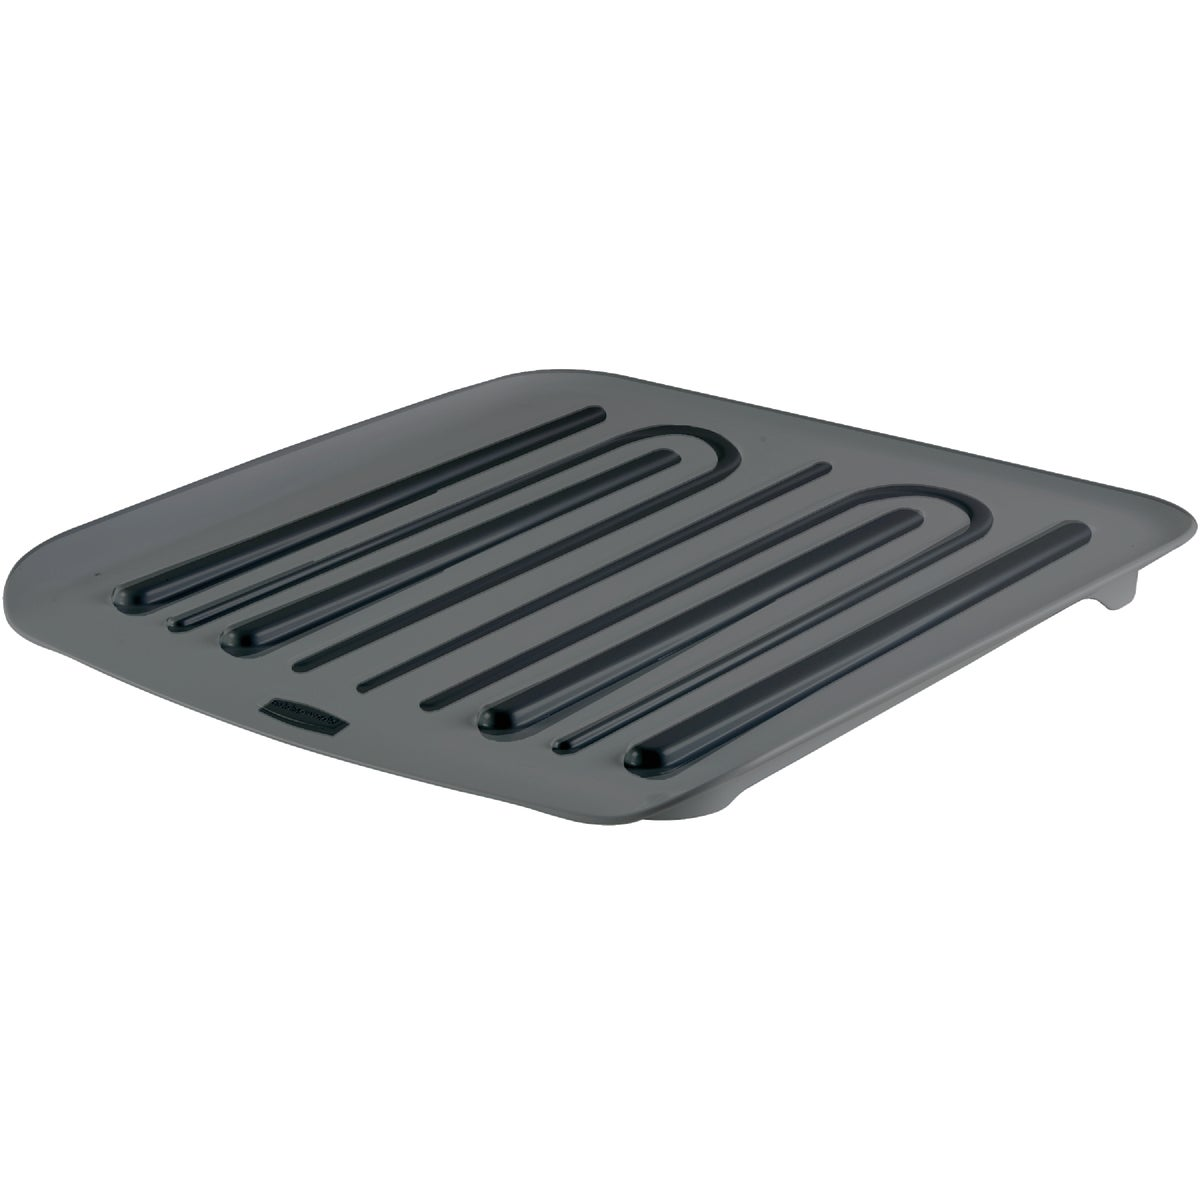 SMALL BLACK DRAINER TRAY